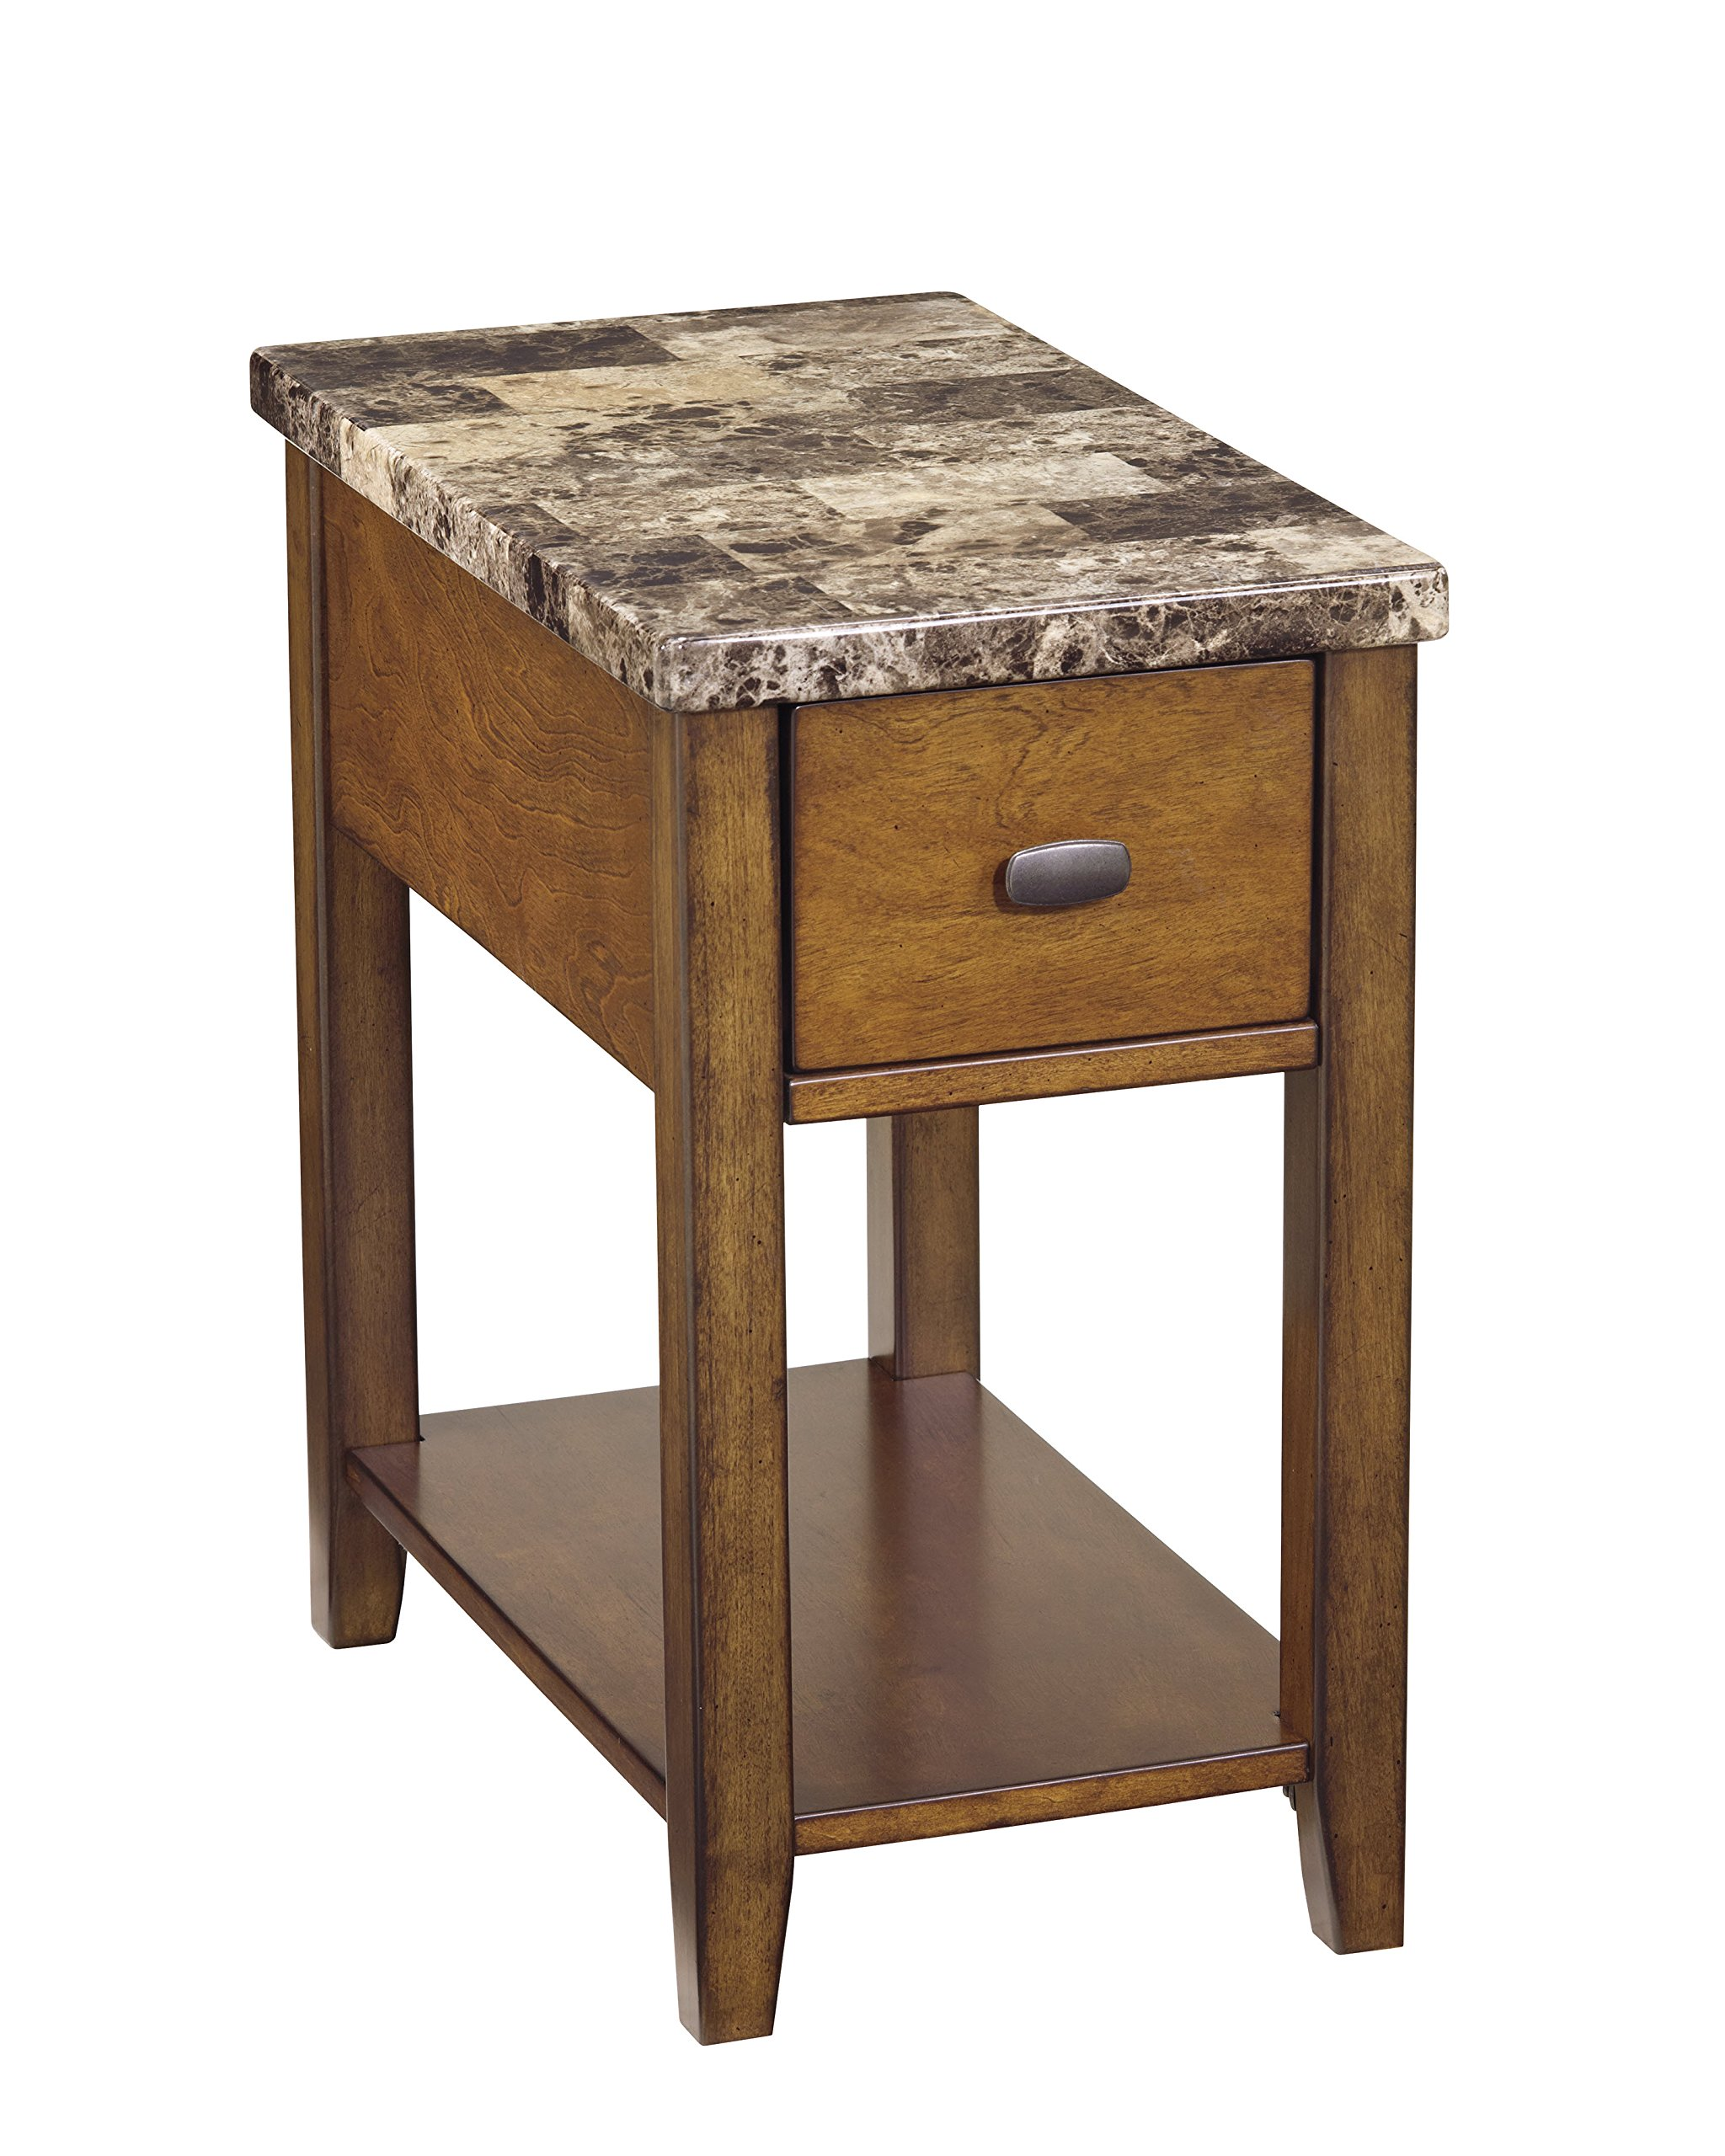 Ashley Furniture Signature Design - Breegin Contemporary Chair Side End Table - Rectangular - Brown by Signature Design by Ashley